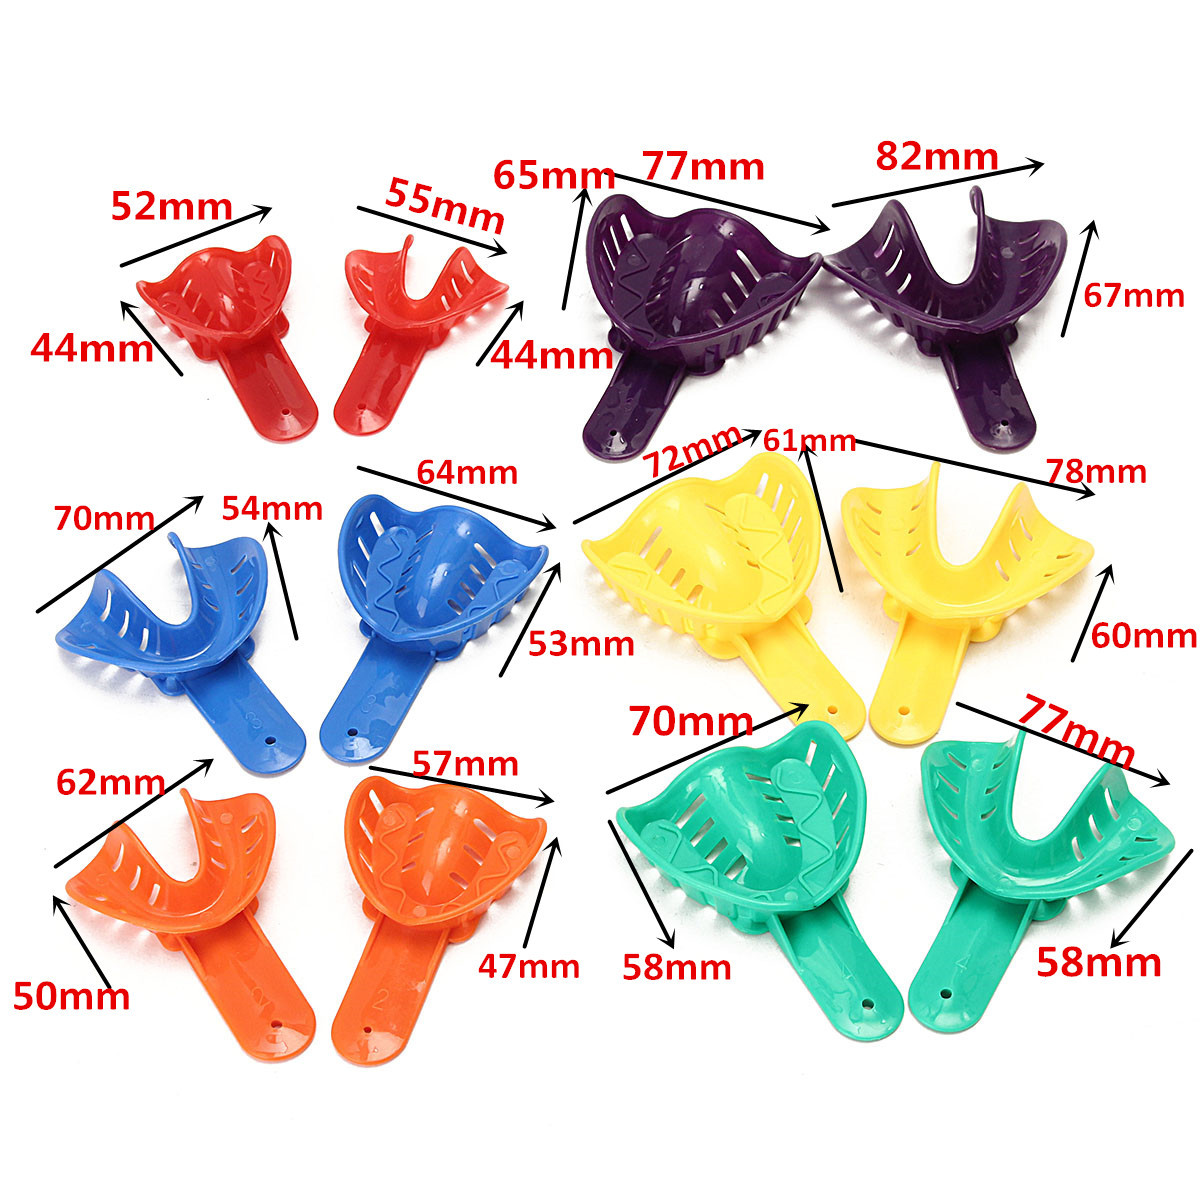 12Pcs Dental Tools Impression Tray Durable And Portable